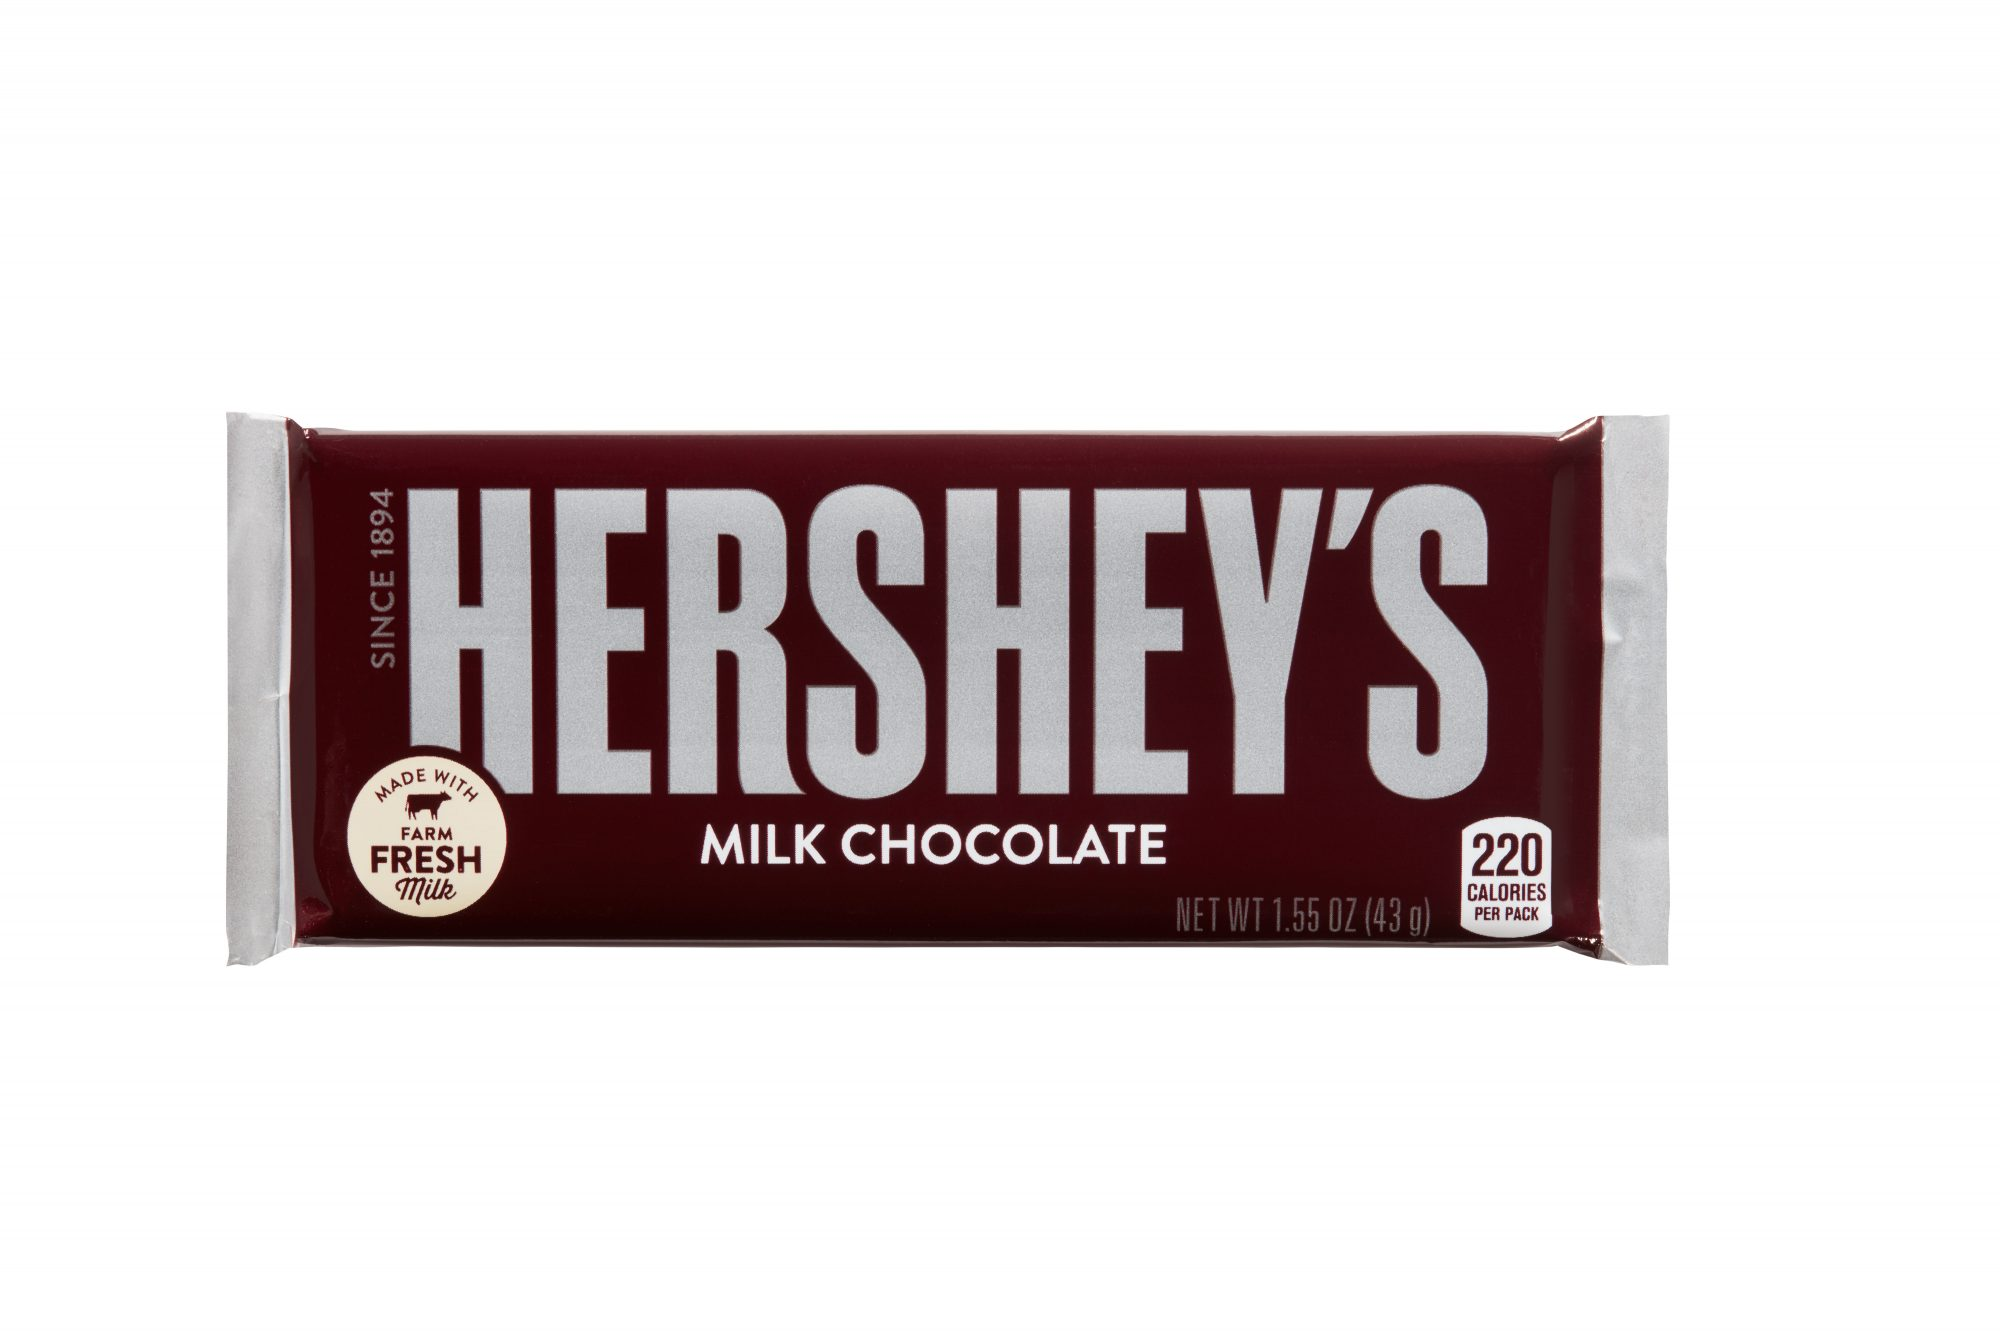 The 25 Most Influential American Candy Bars of All Time 1900-hersheys-chocolate-bar